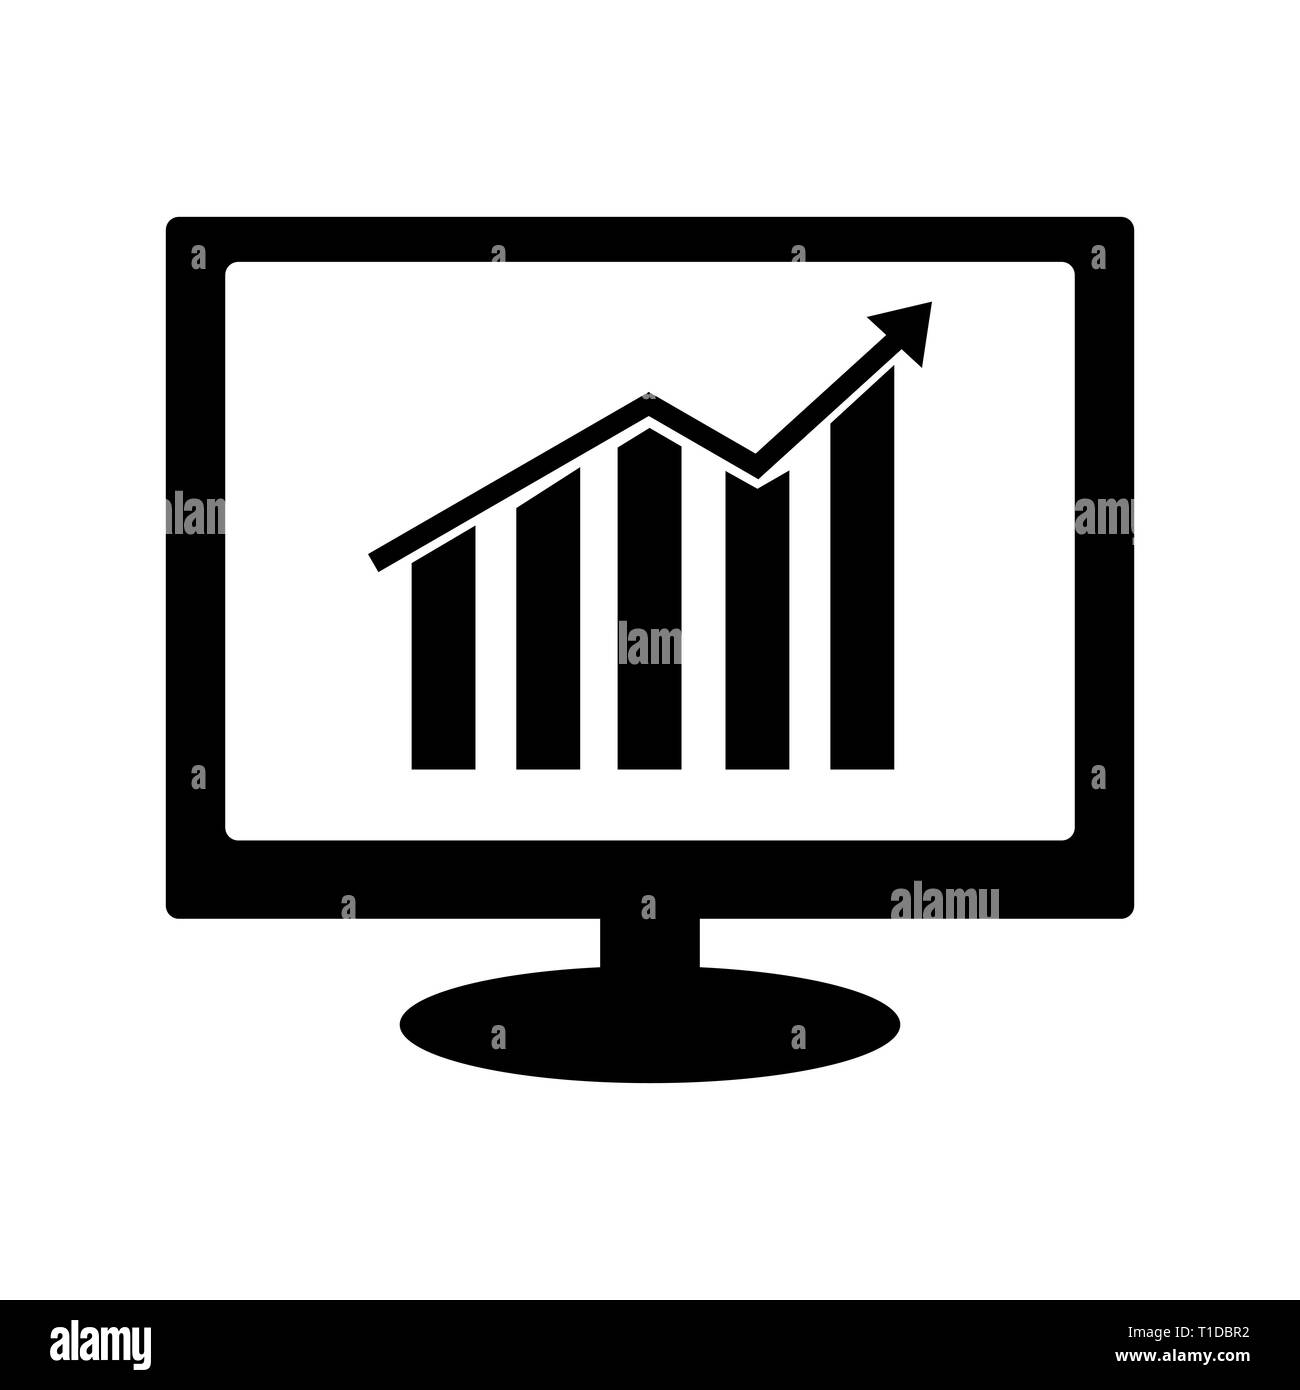 Growth bar chart icon on computer monitor - Stock Image